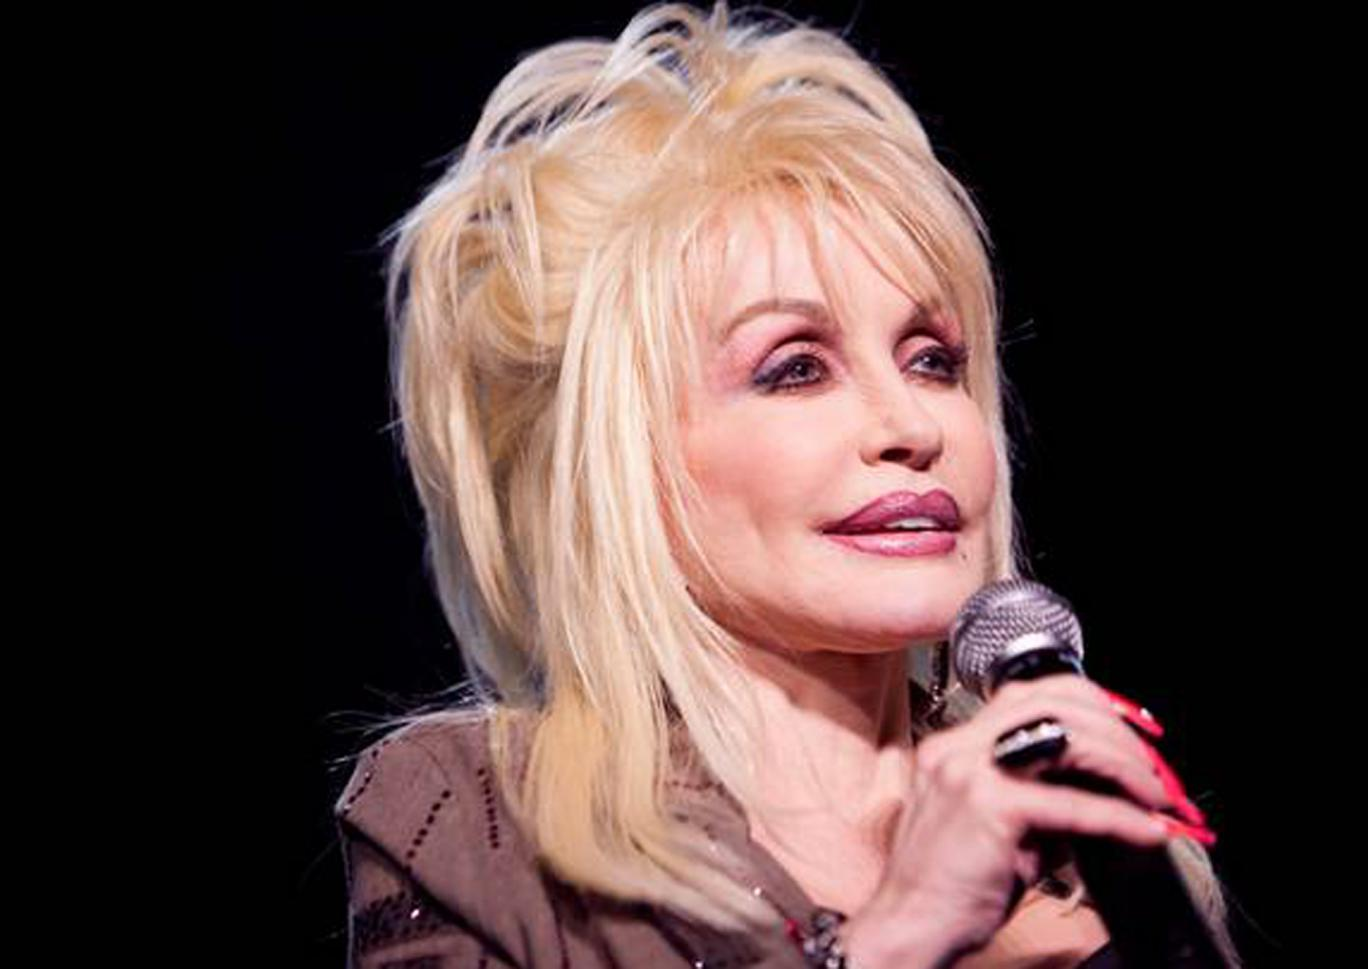 Dolly Parton had been strongly tipped for Glastonbury 2014 and confirmed the speculation on Twitter